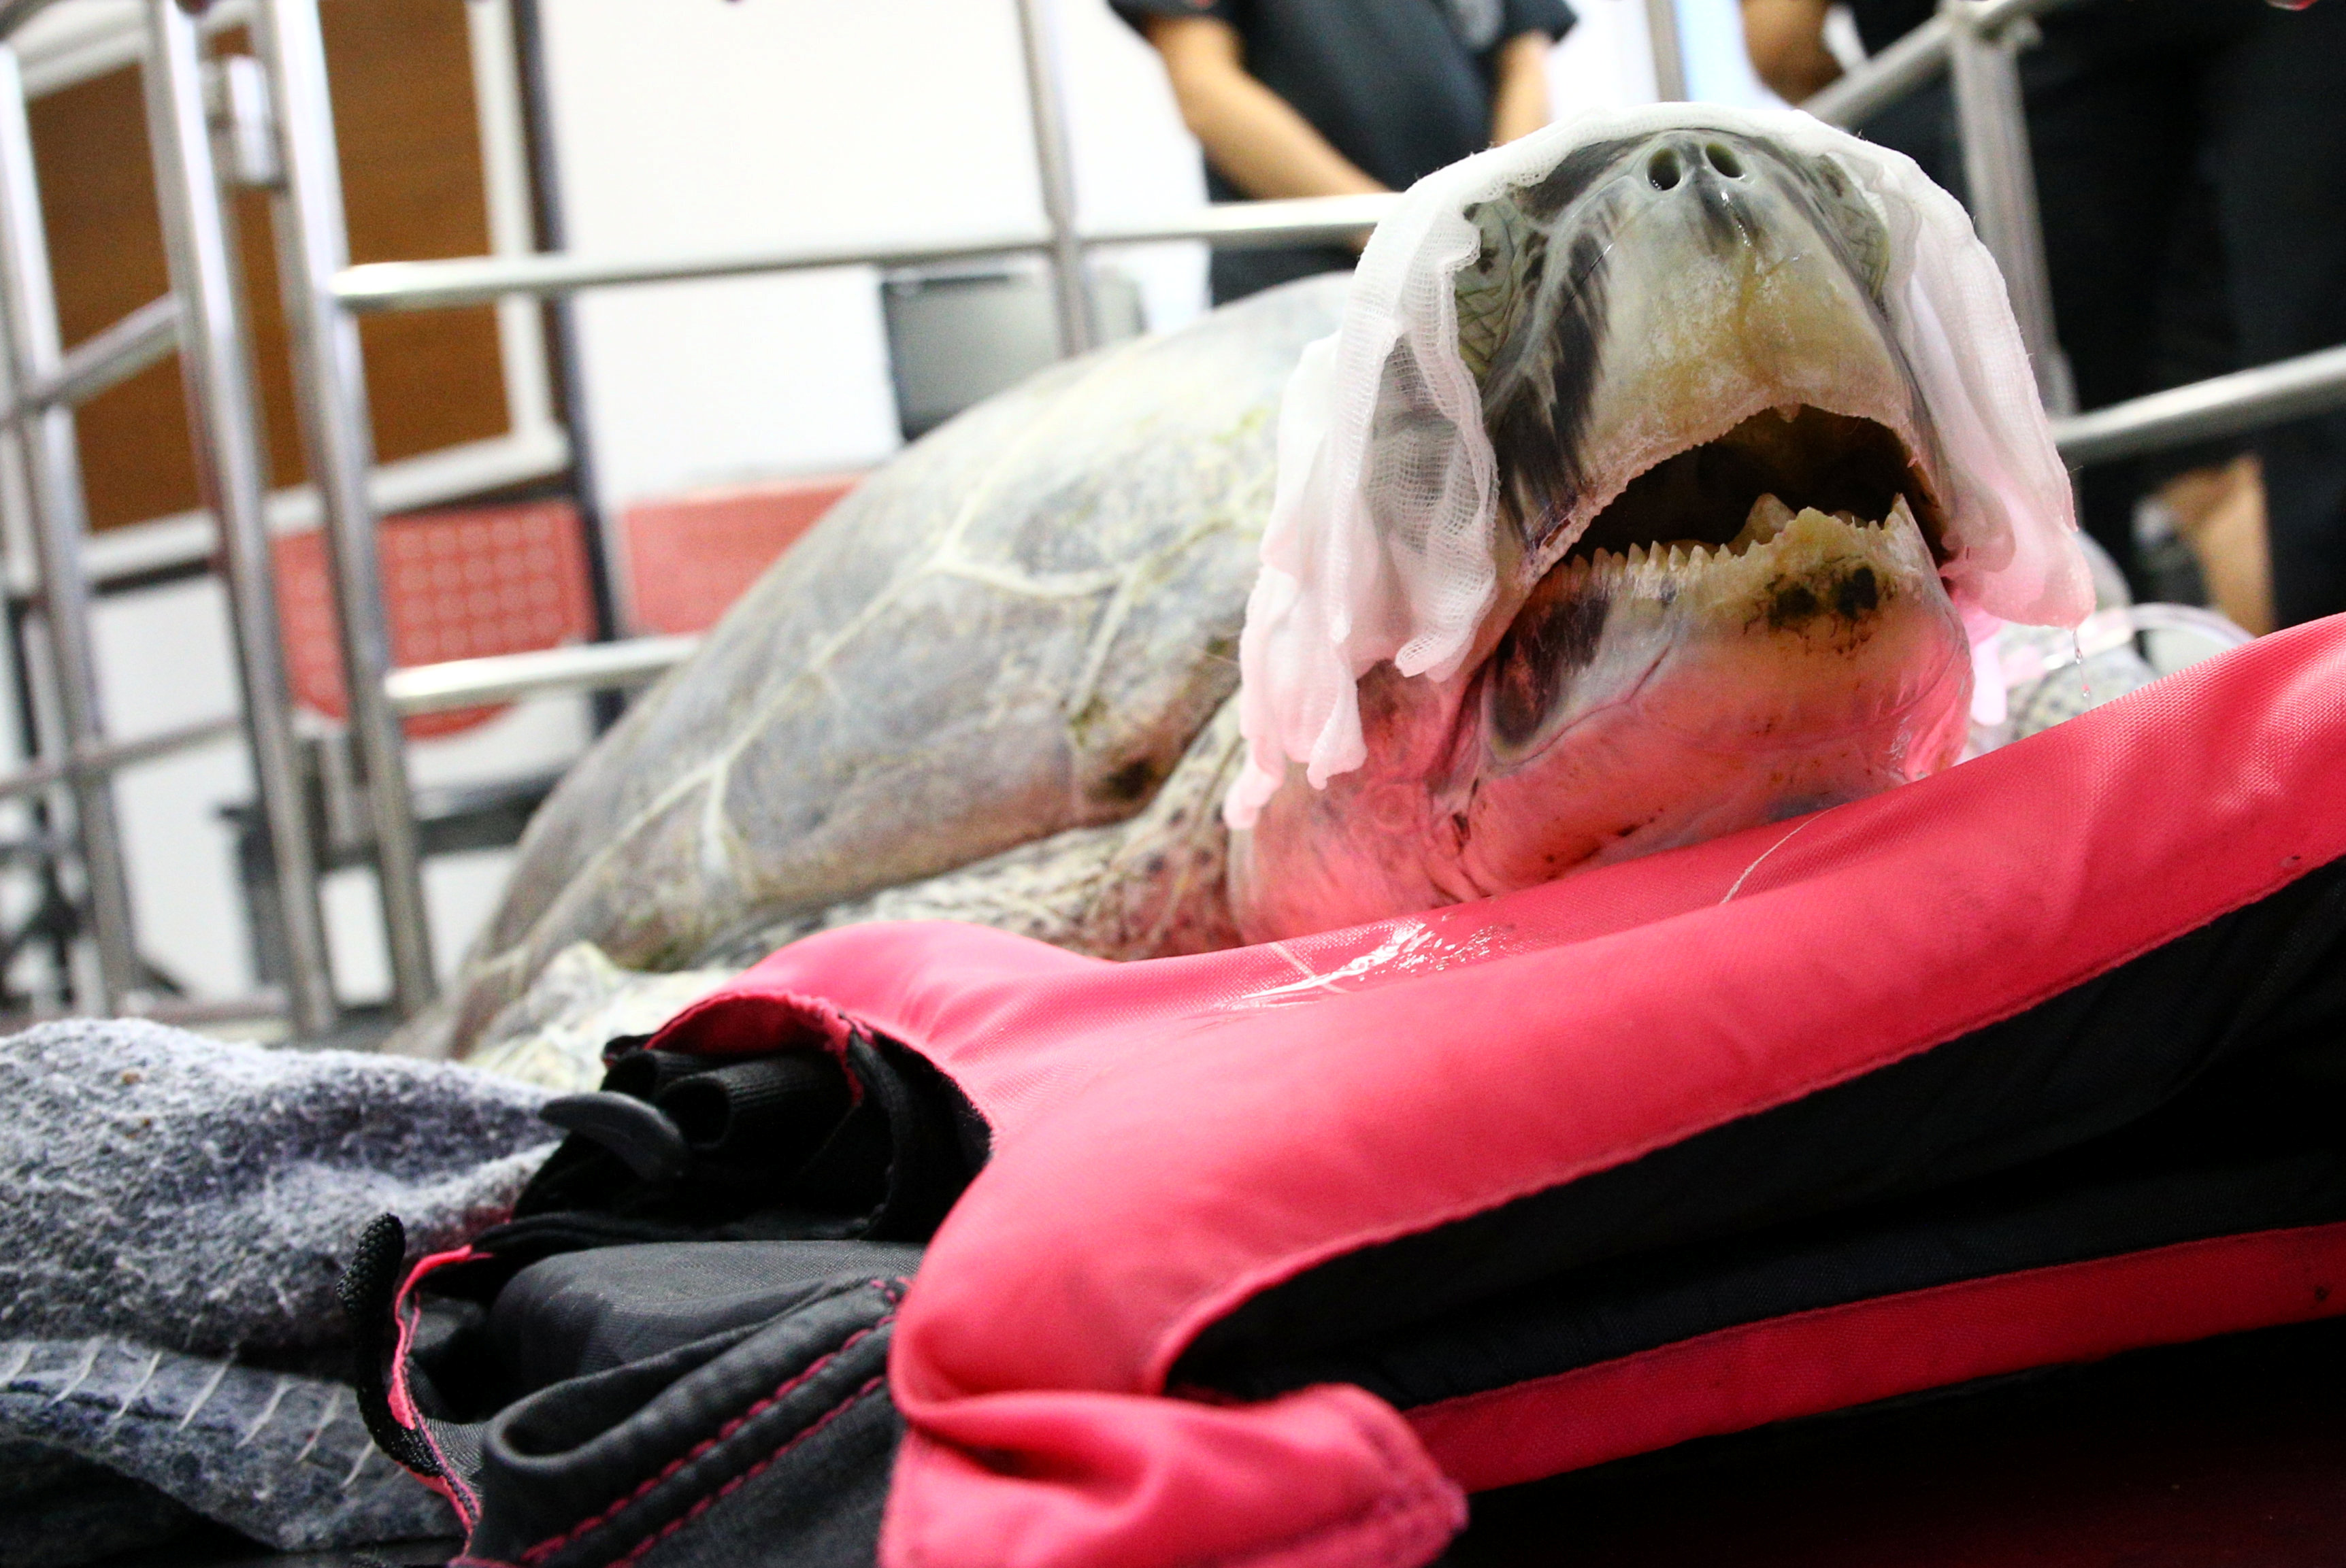 Omsin, a 25 year old femal green sea turtle, rests after a surgical operation to remove coins from her stomach at the Faculty of Veterinary Science, Chulalongkorn University in Bangkok, Thailand March 6, 2017. REUTERS/Athit Perawongmetha